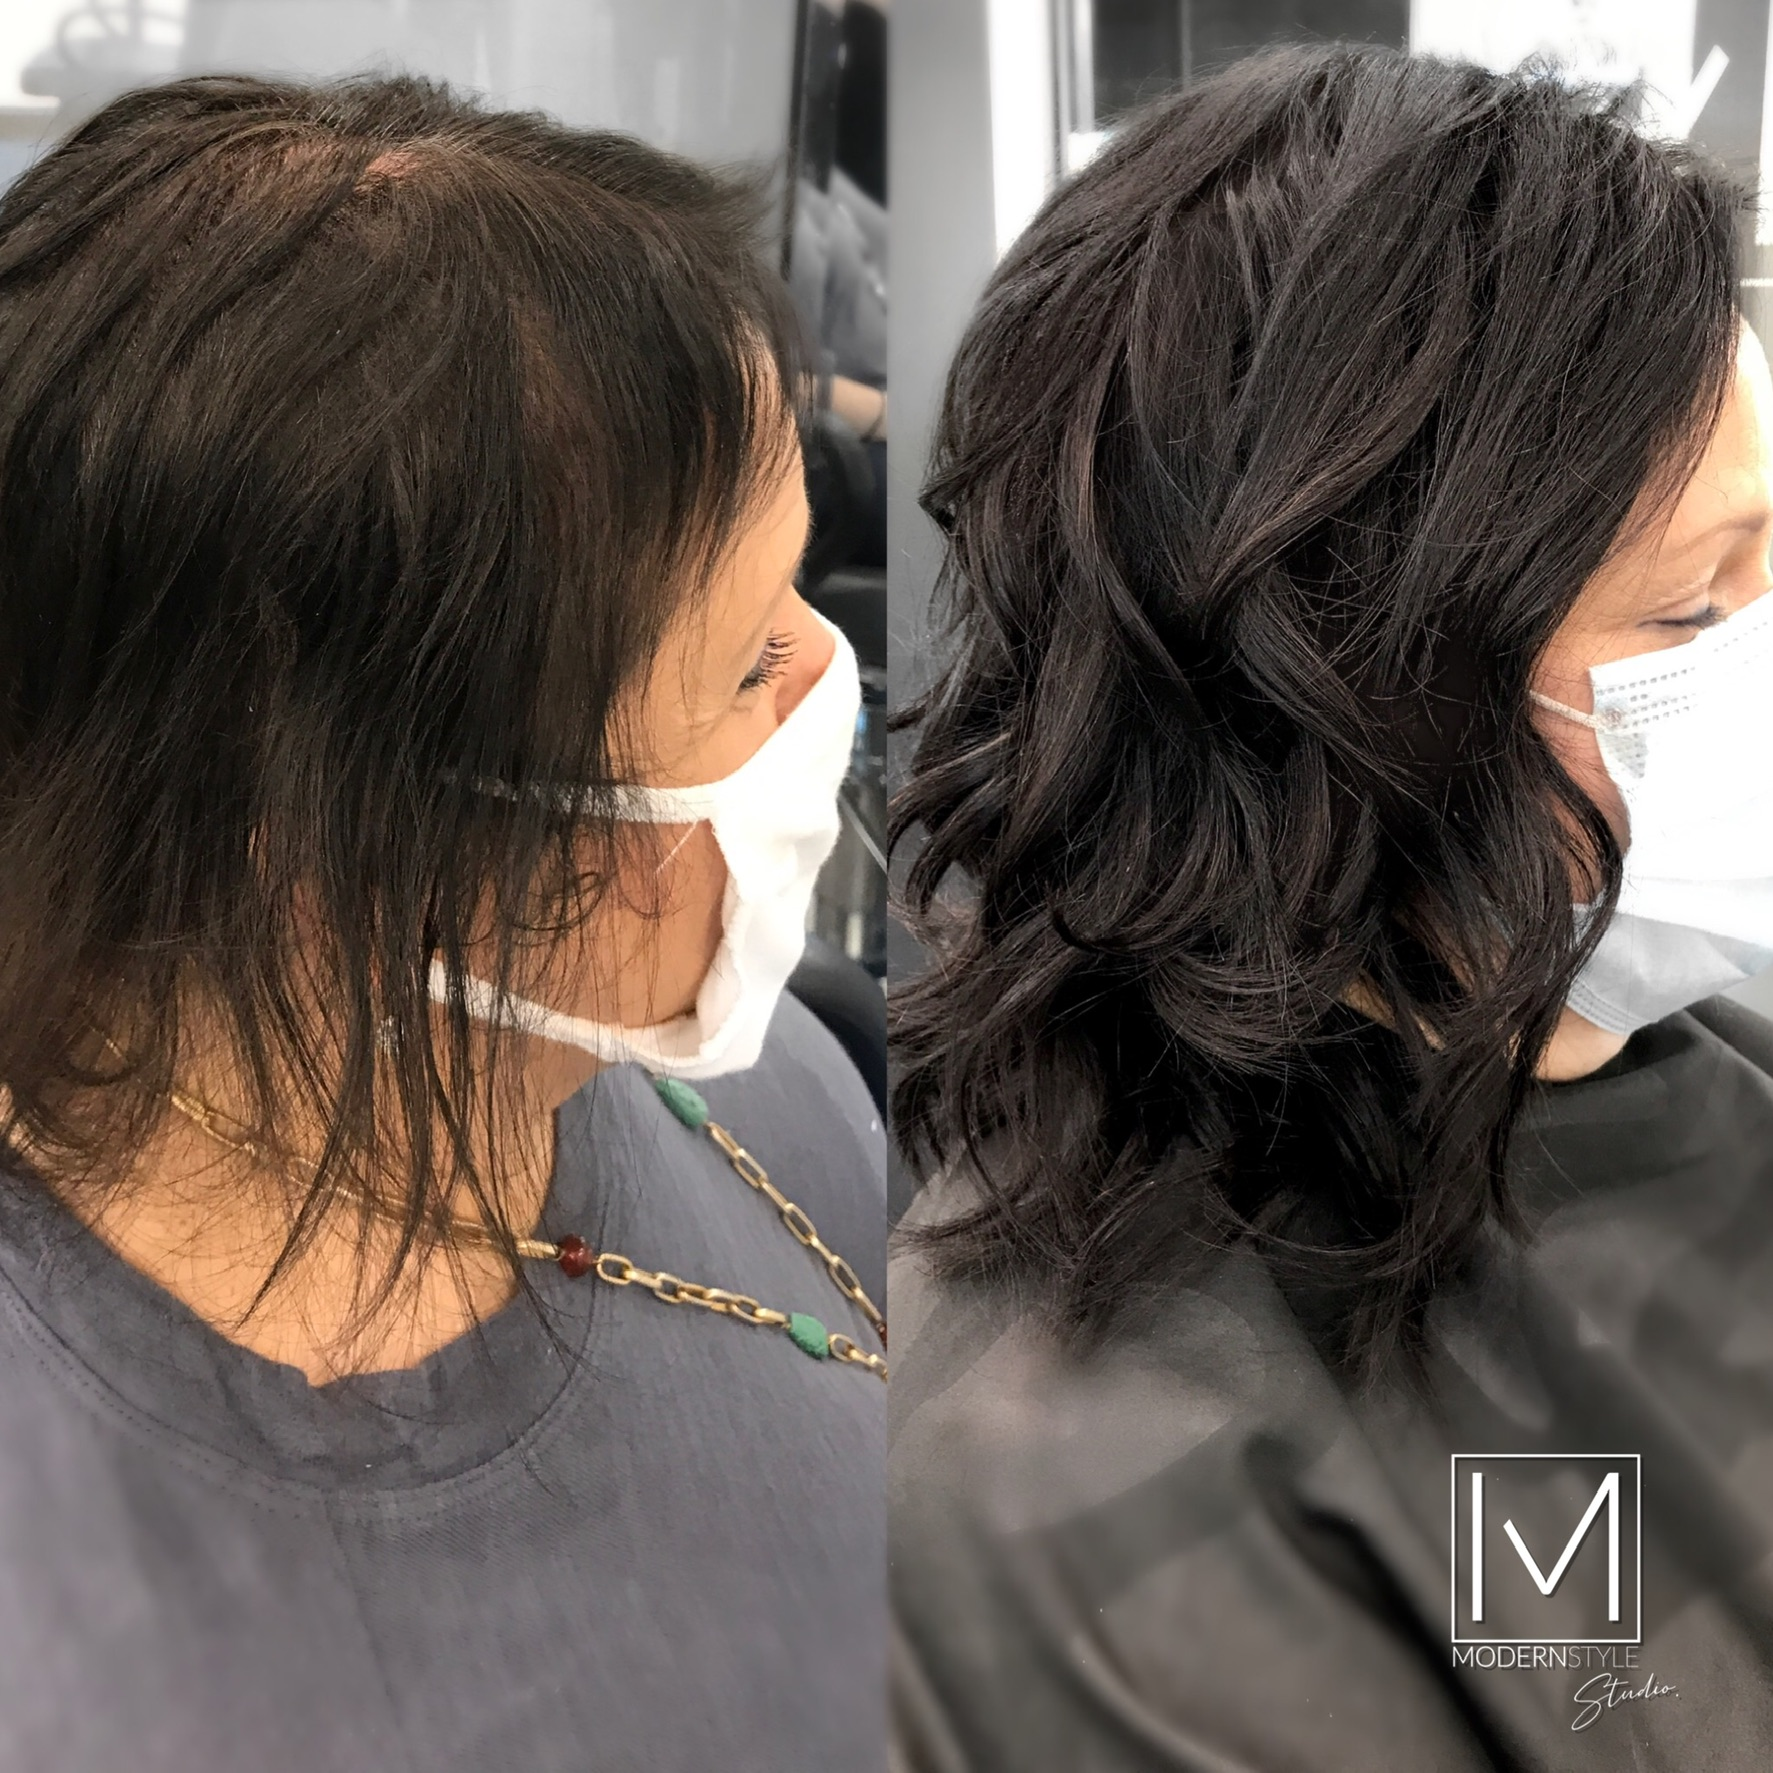 Top rated hair extensions salon near me, Hair extensions near me, hair extensions specialist Charlotte nc, best hair extensions in Charlotte nc, hand-tied extensions Charlotte, luxury hair extensions